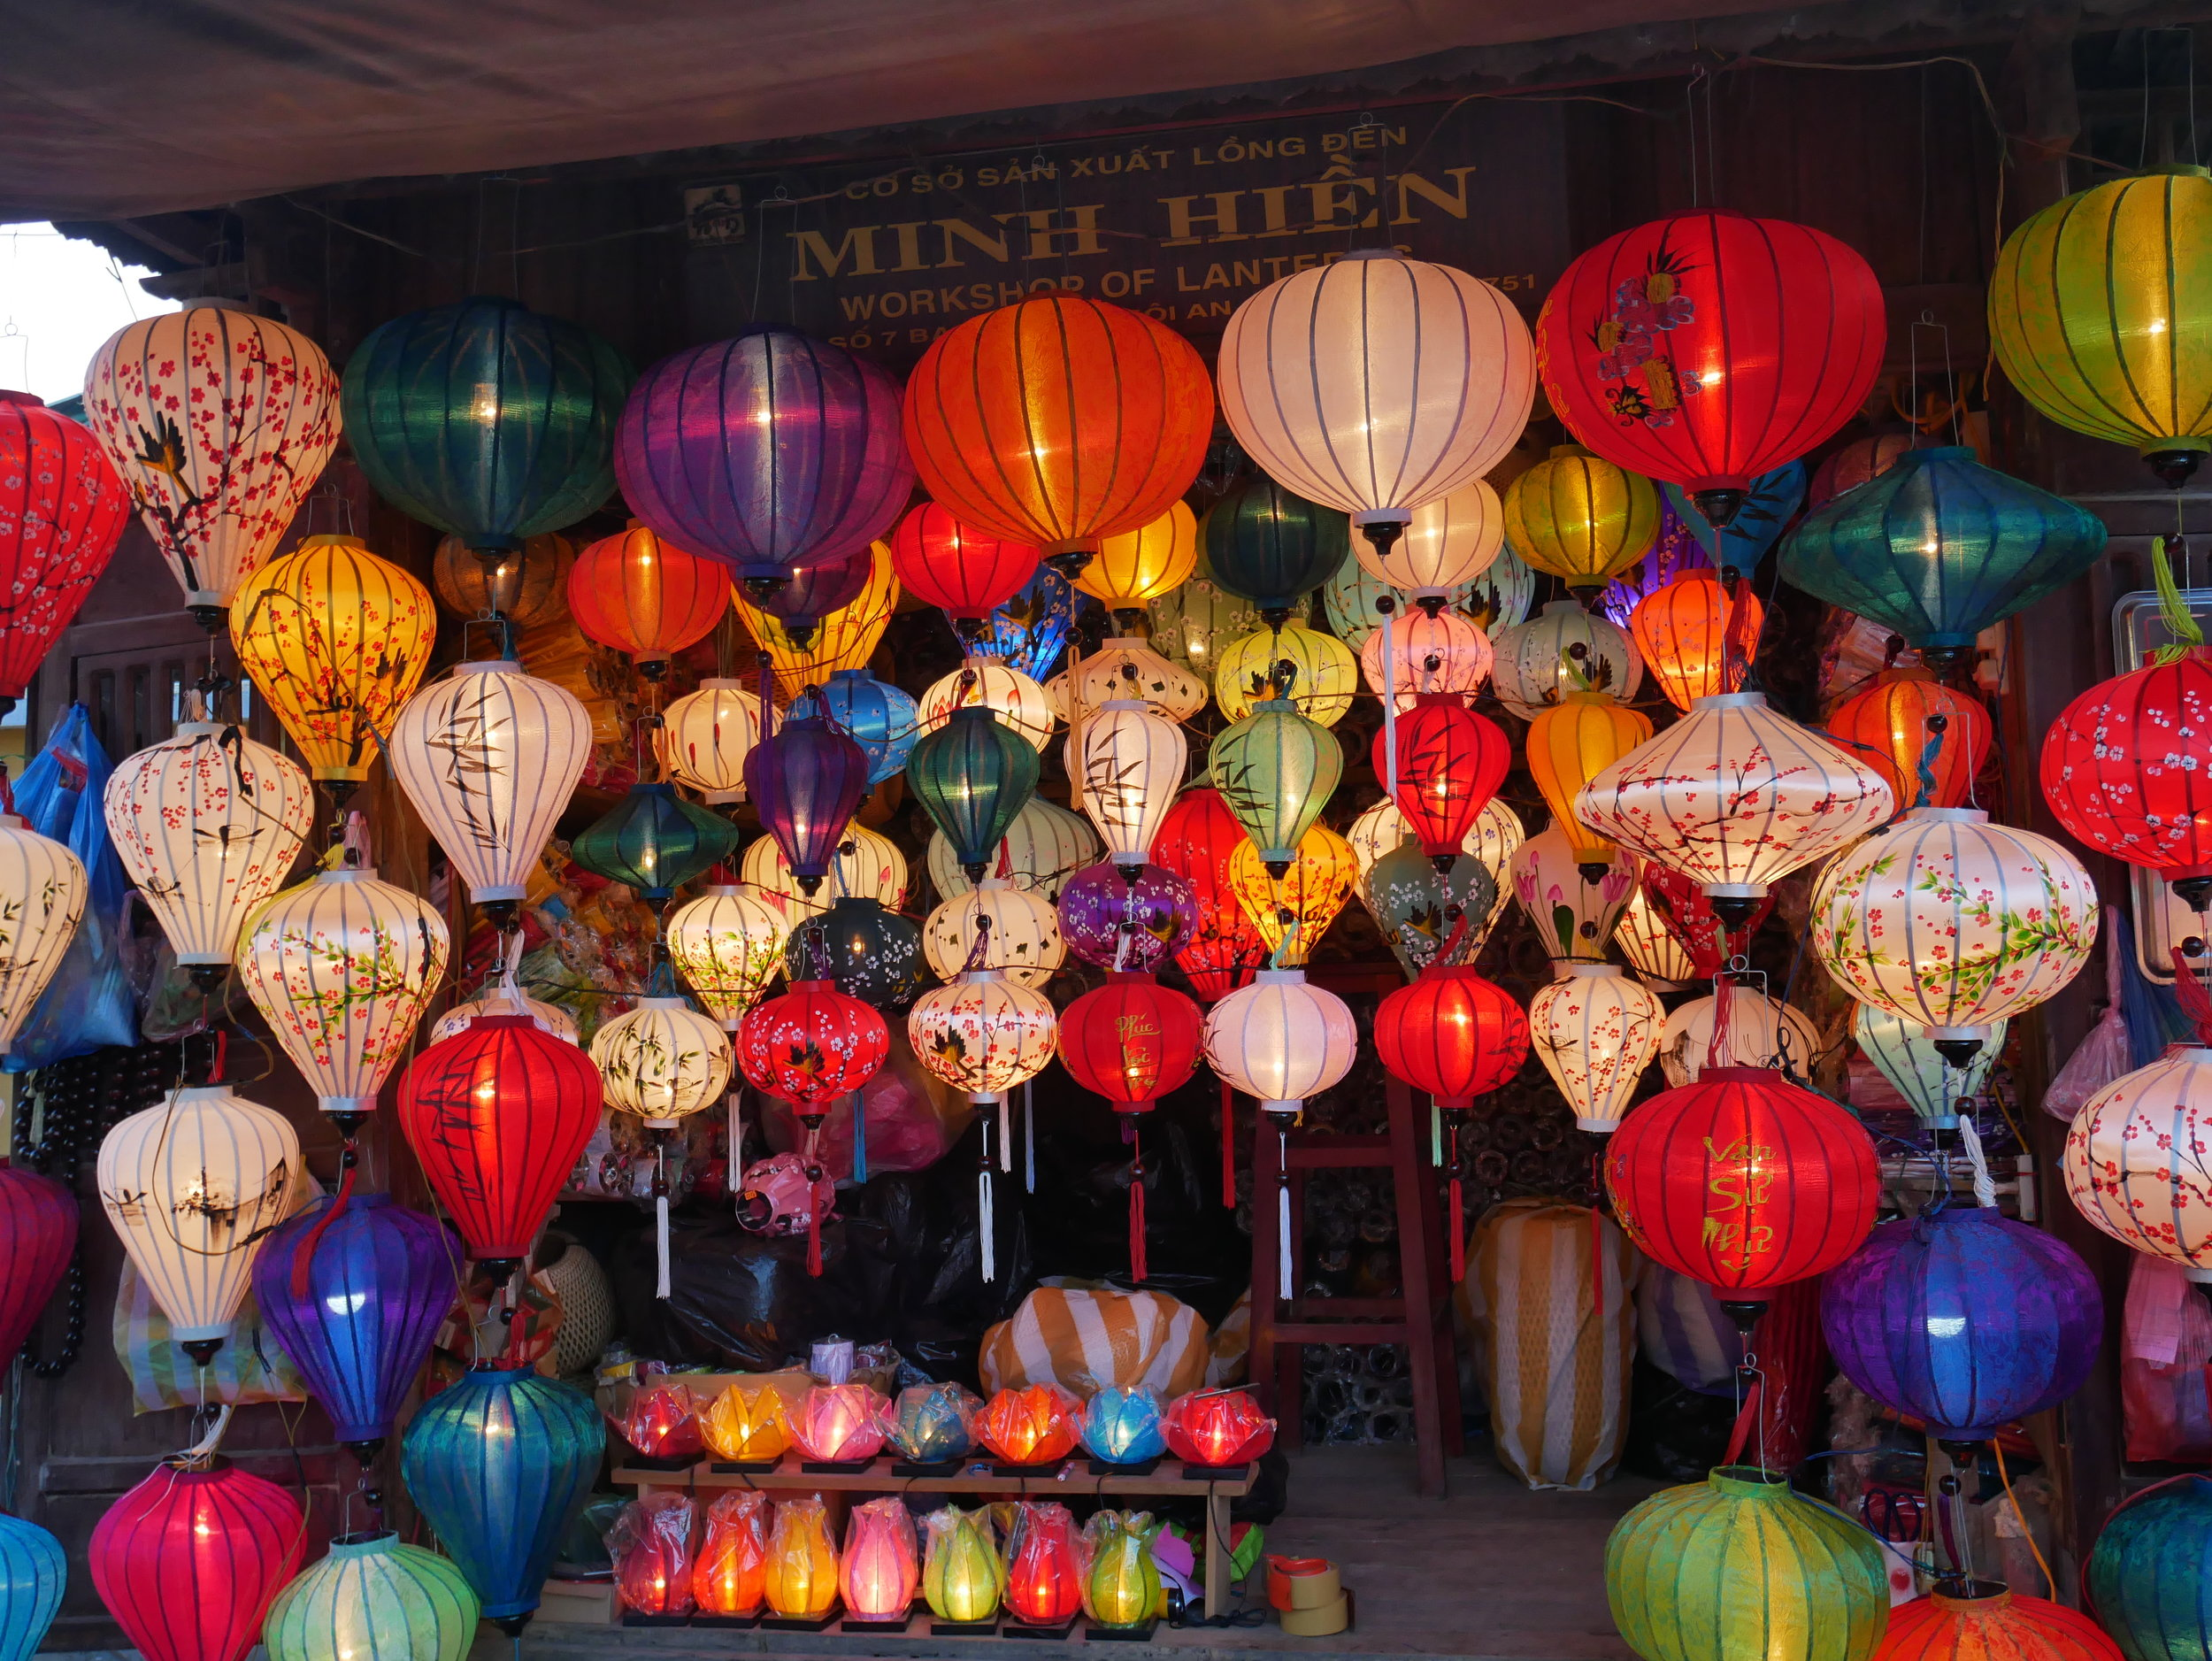 Hoi An Lanterns shop in the night market